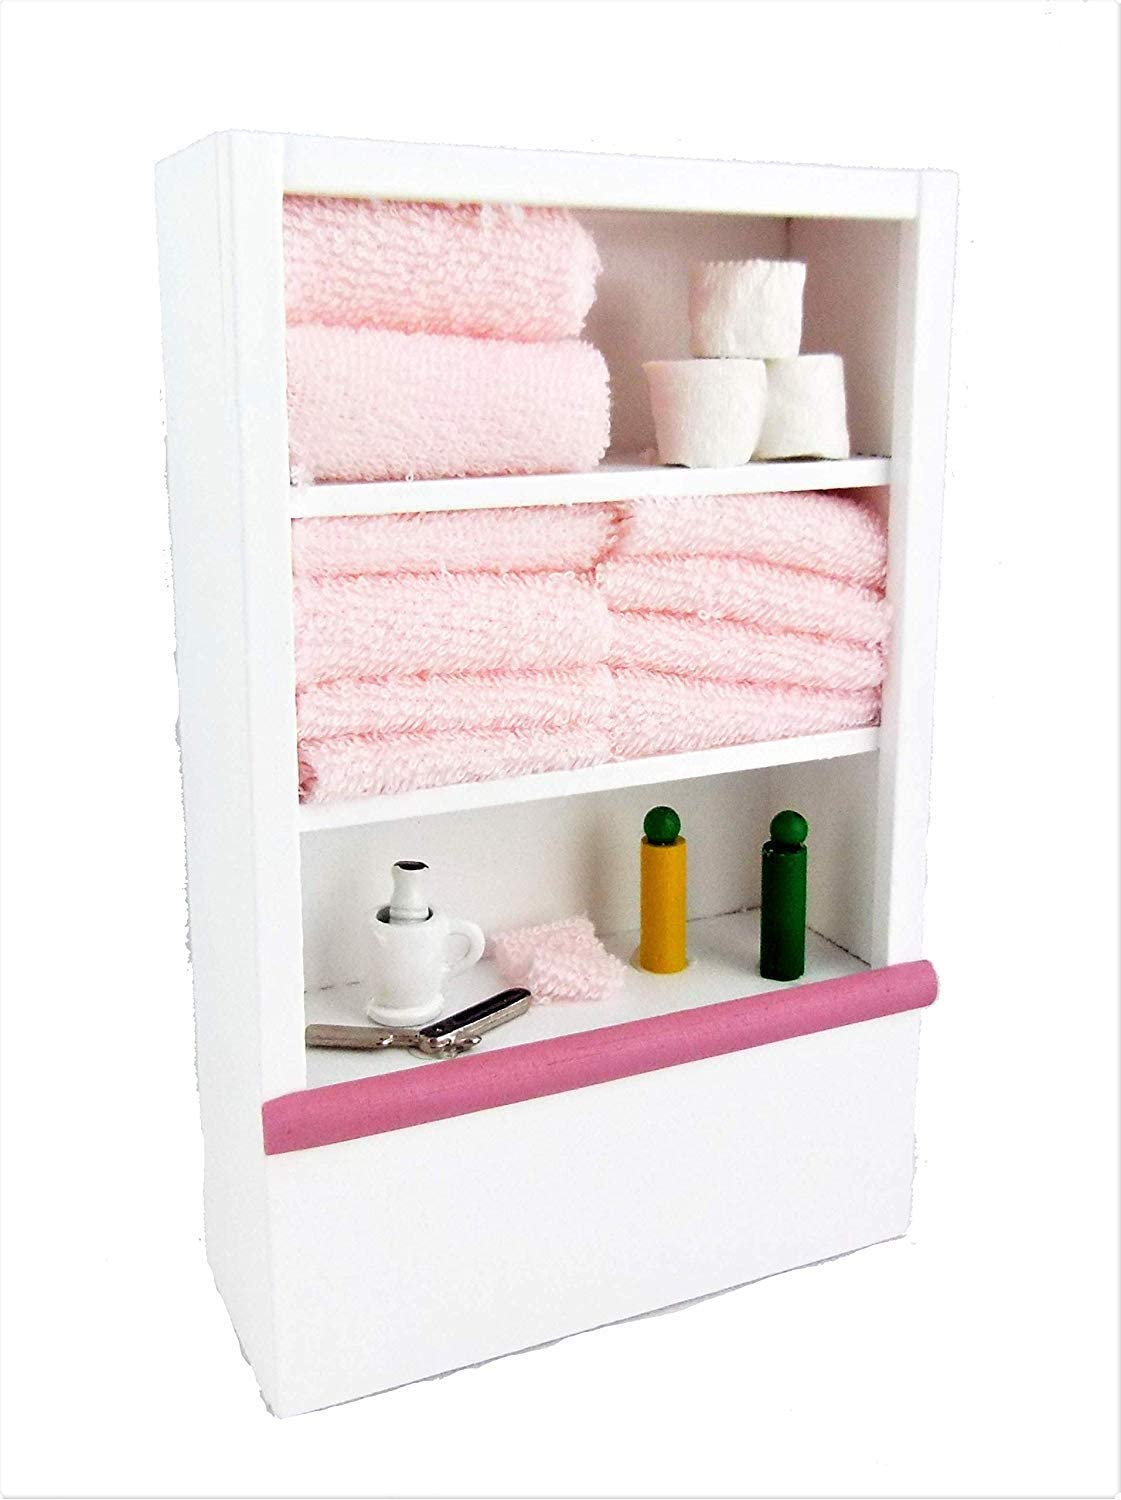 Dollhouse Miniature Furniture White Bathroom Shelf Unit and Accessories Pink